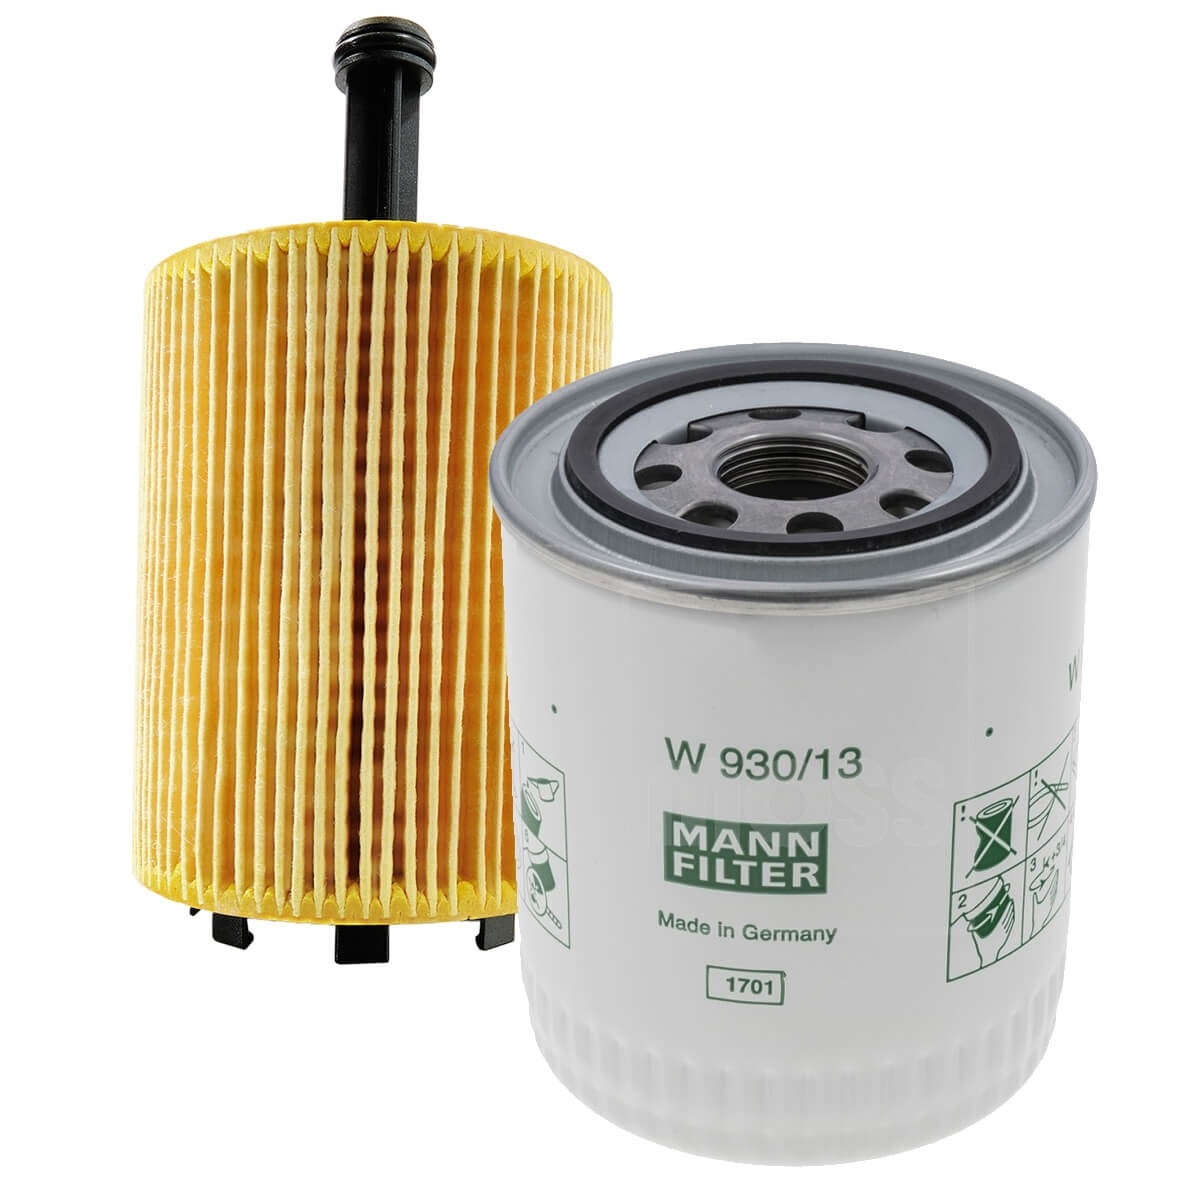 CHRYSLER VOYAGER IV Oil Filter